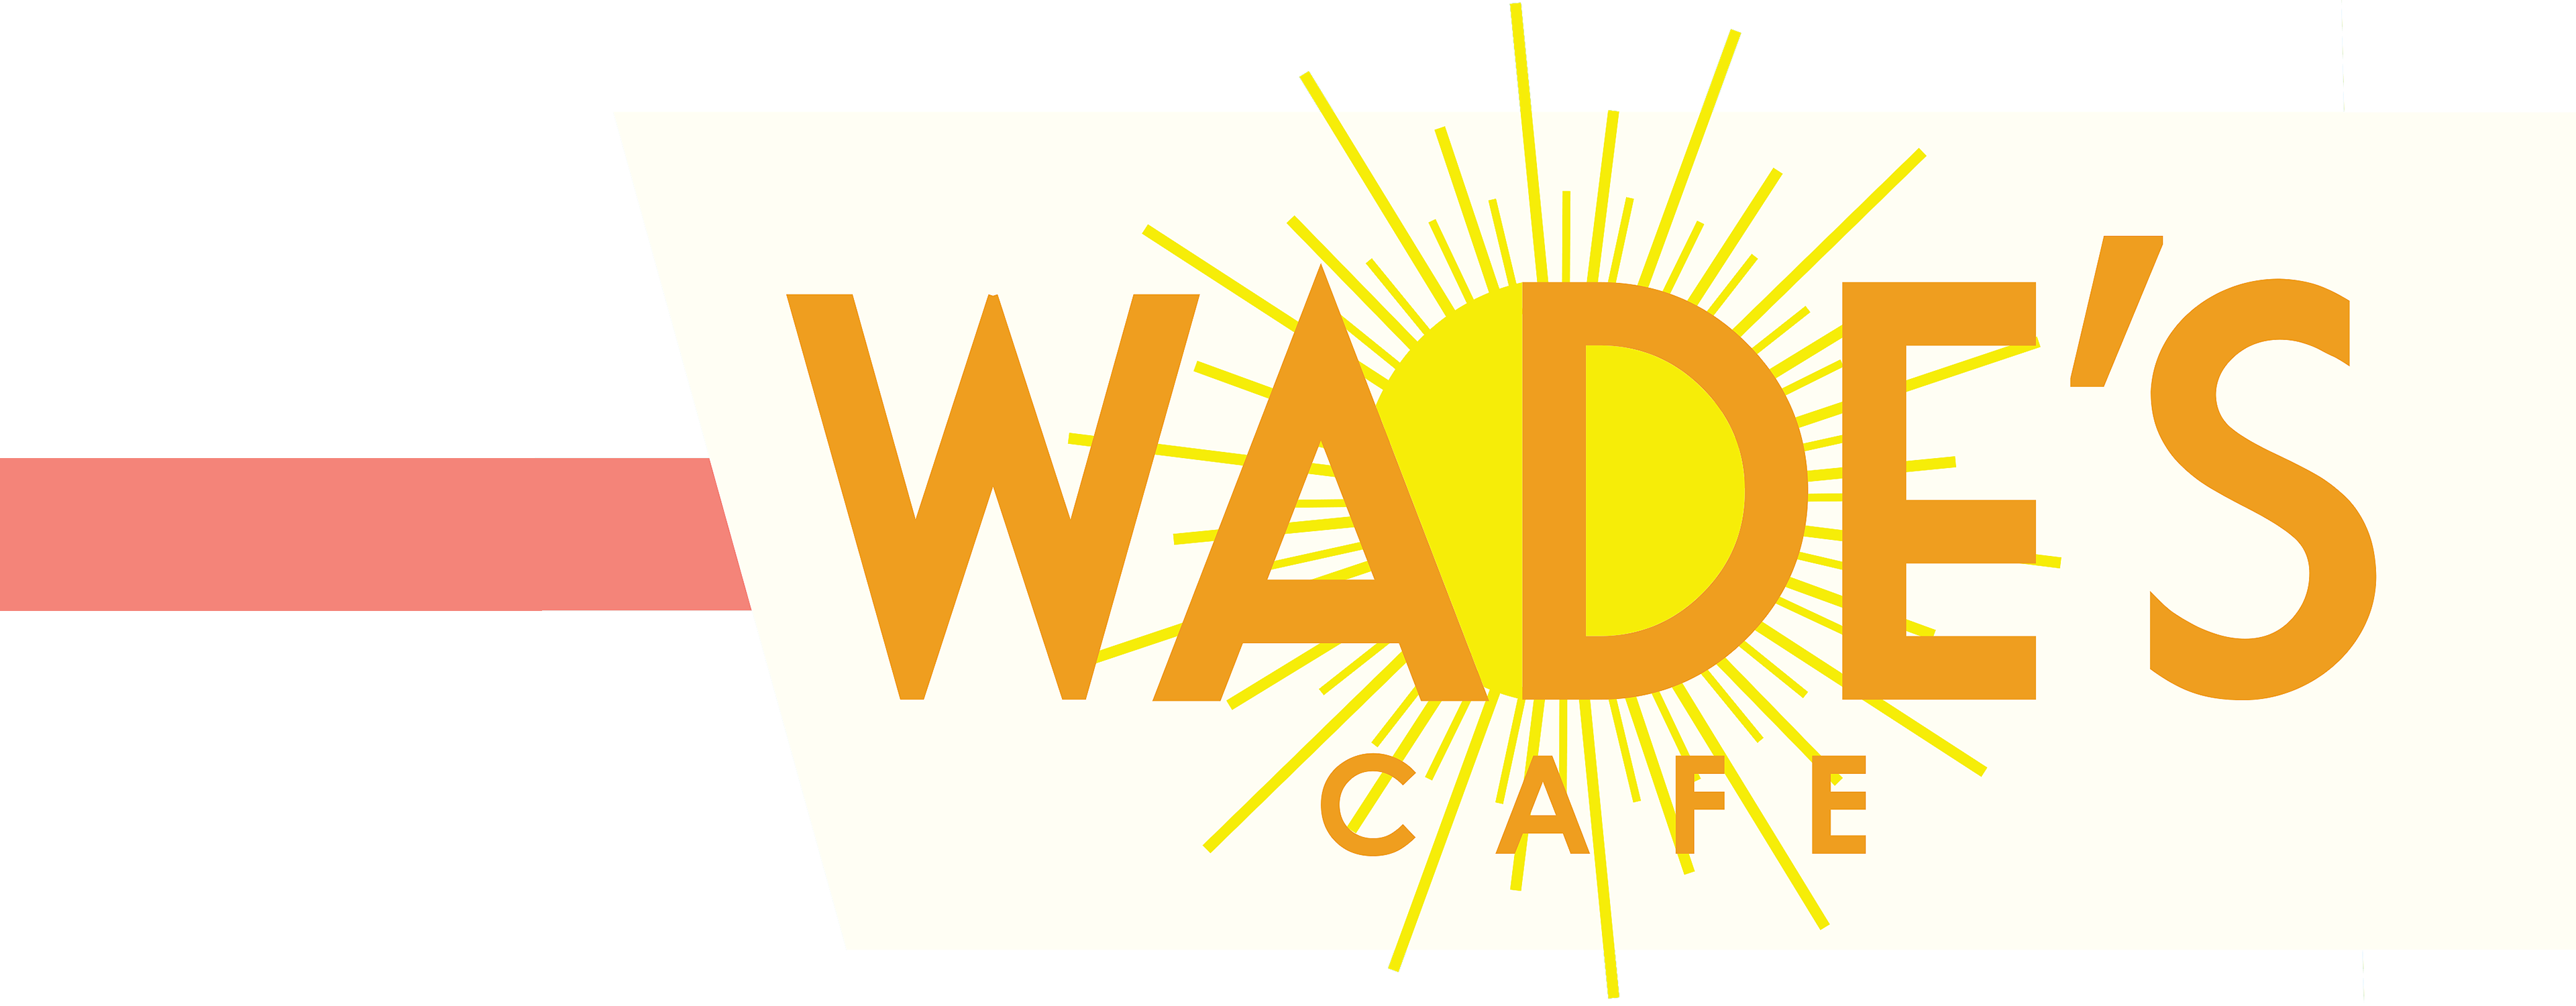 Wade's Cafe